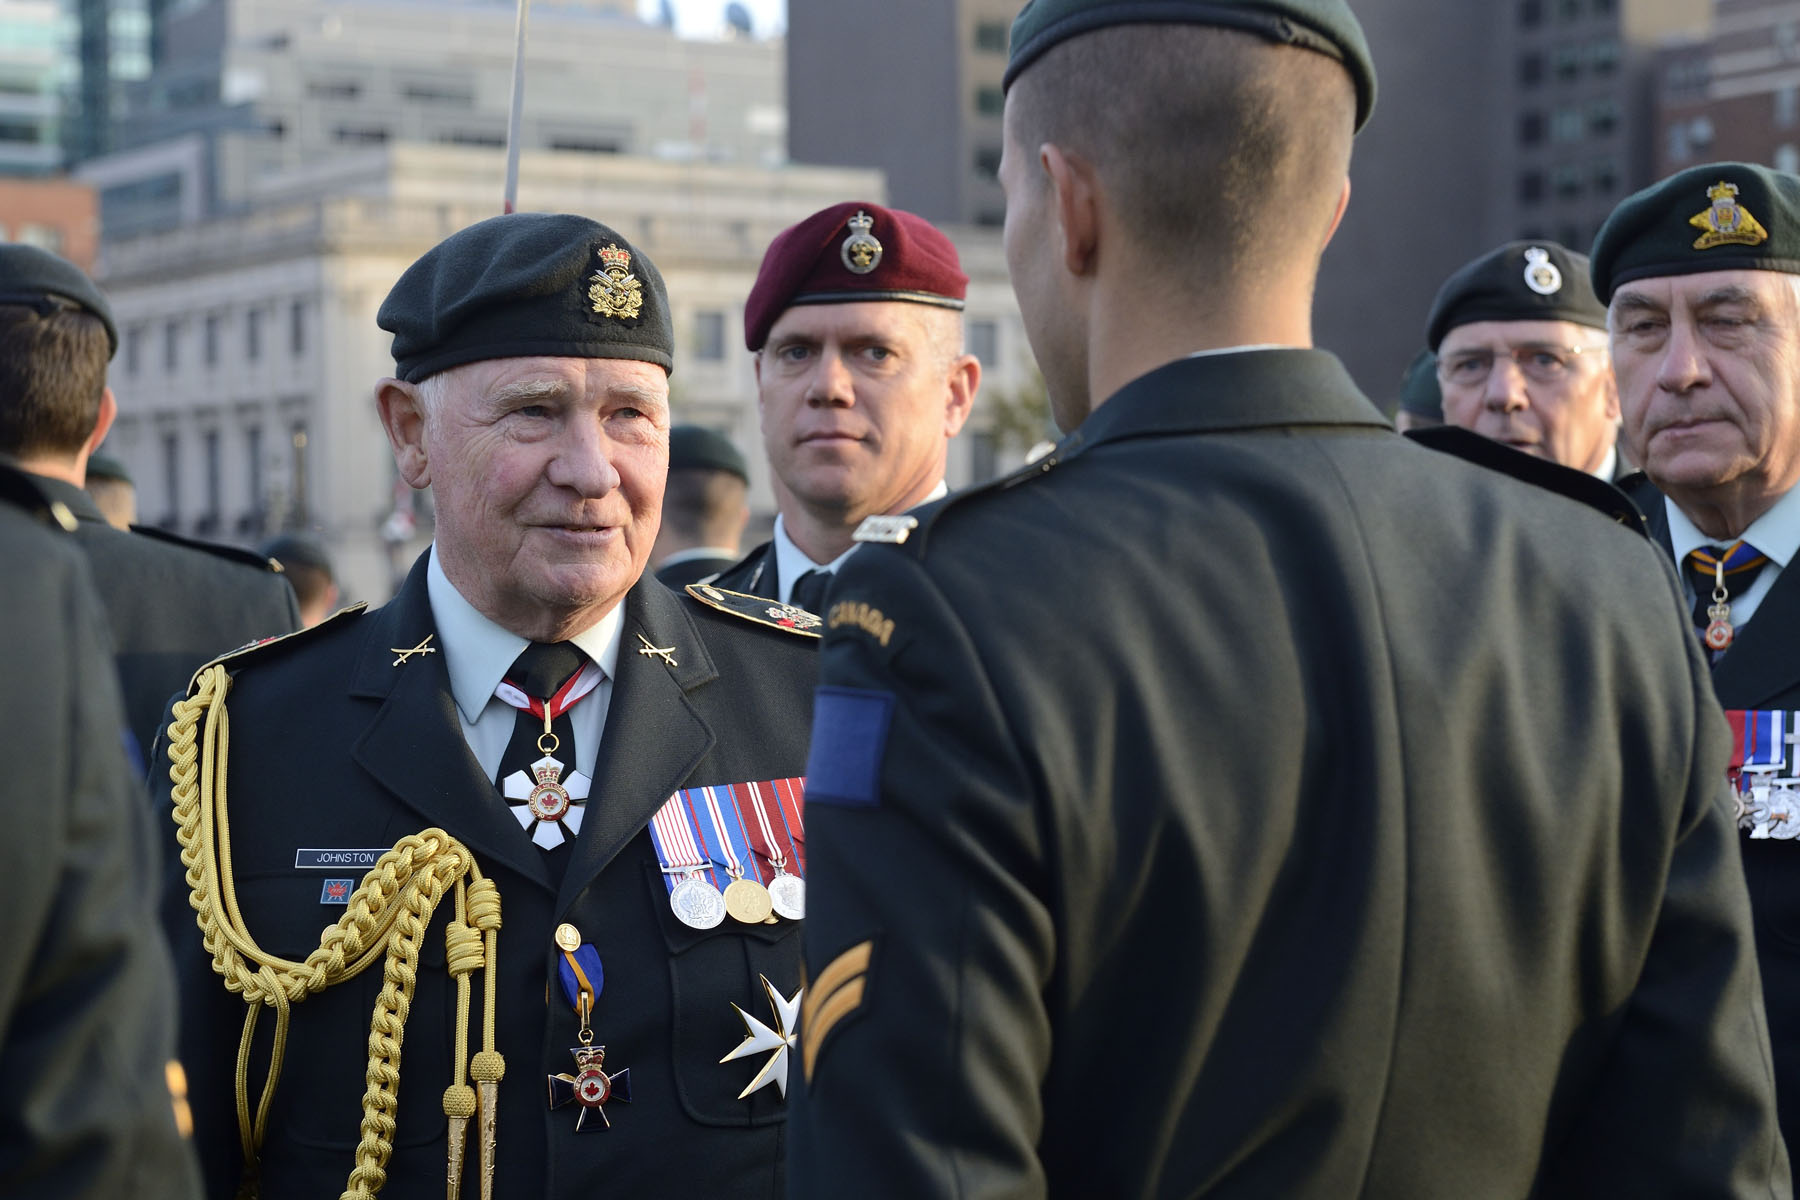 During the review of the troops, His Excellency spoke with PPCLI and R22R members.